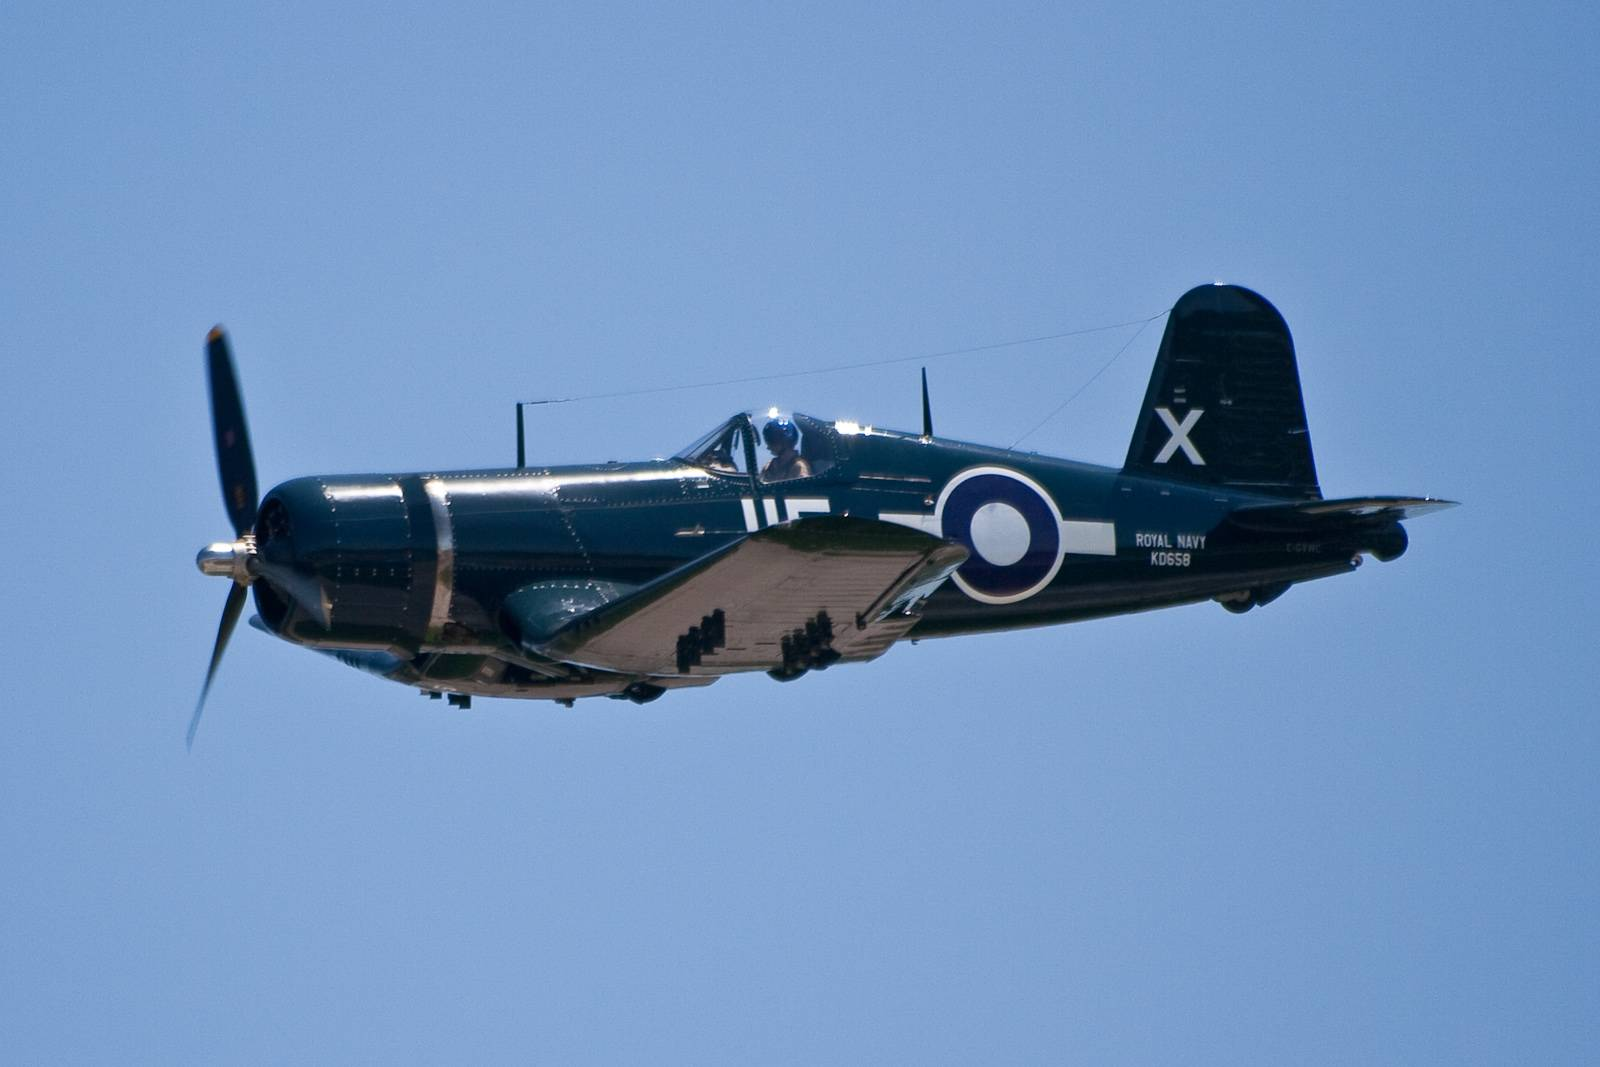 Le FG-1D Corsair (C-GVWC) de Vintage Wings of Canada's Goodyear en 2009 (Photo Henry Lo (CC BY-NC-ND 2.0))